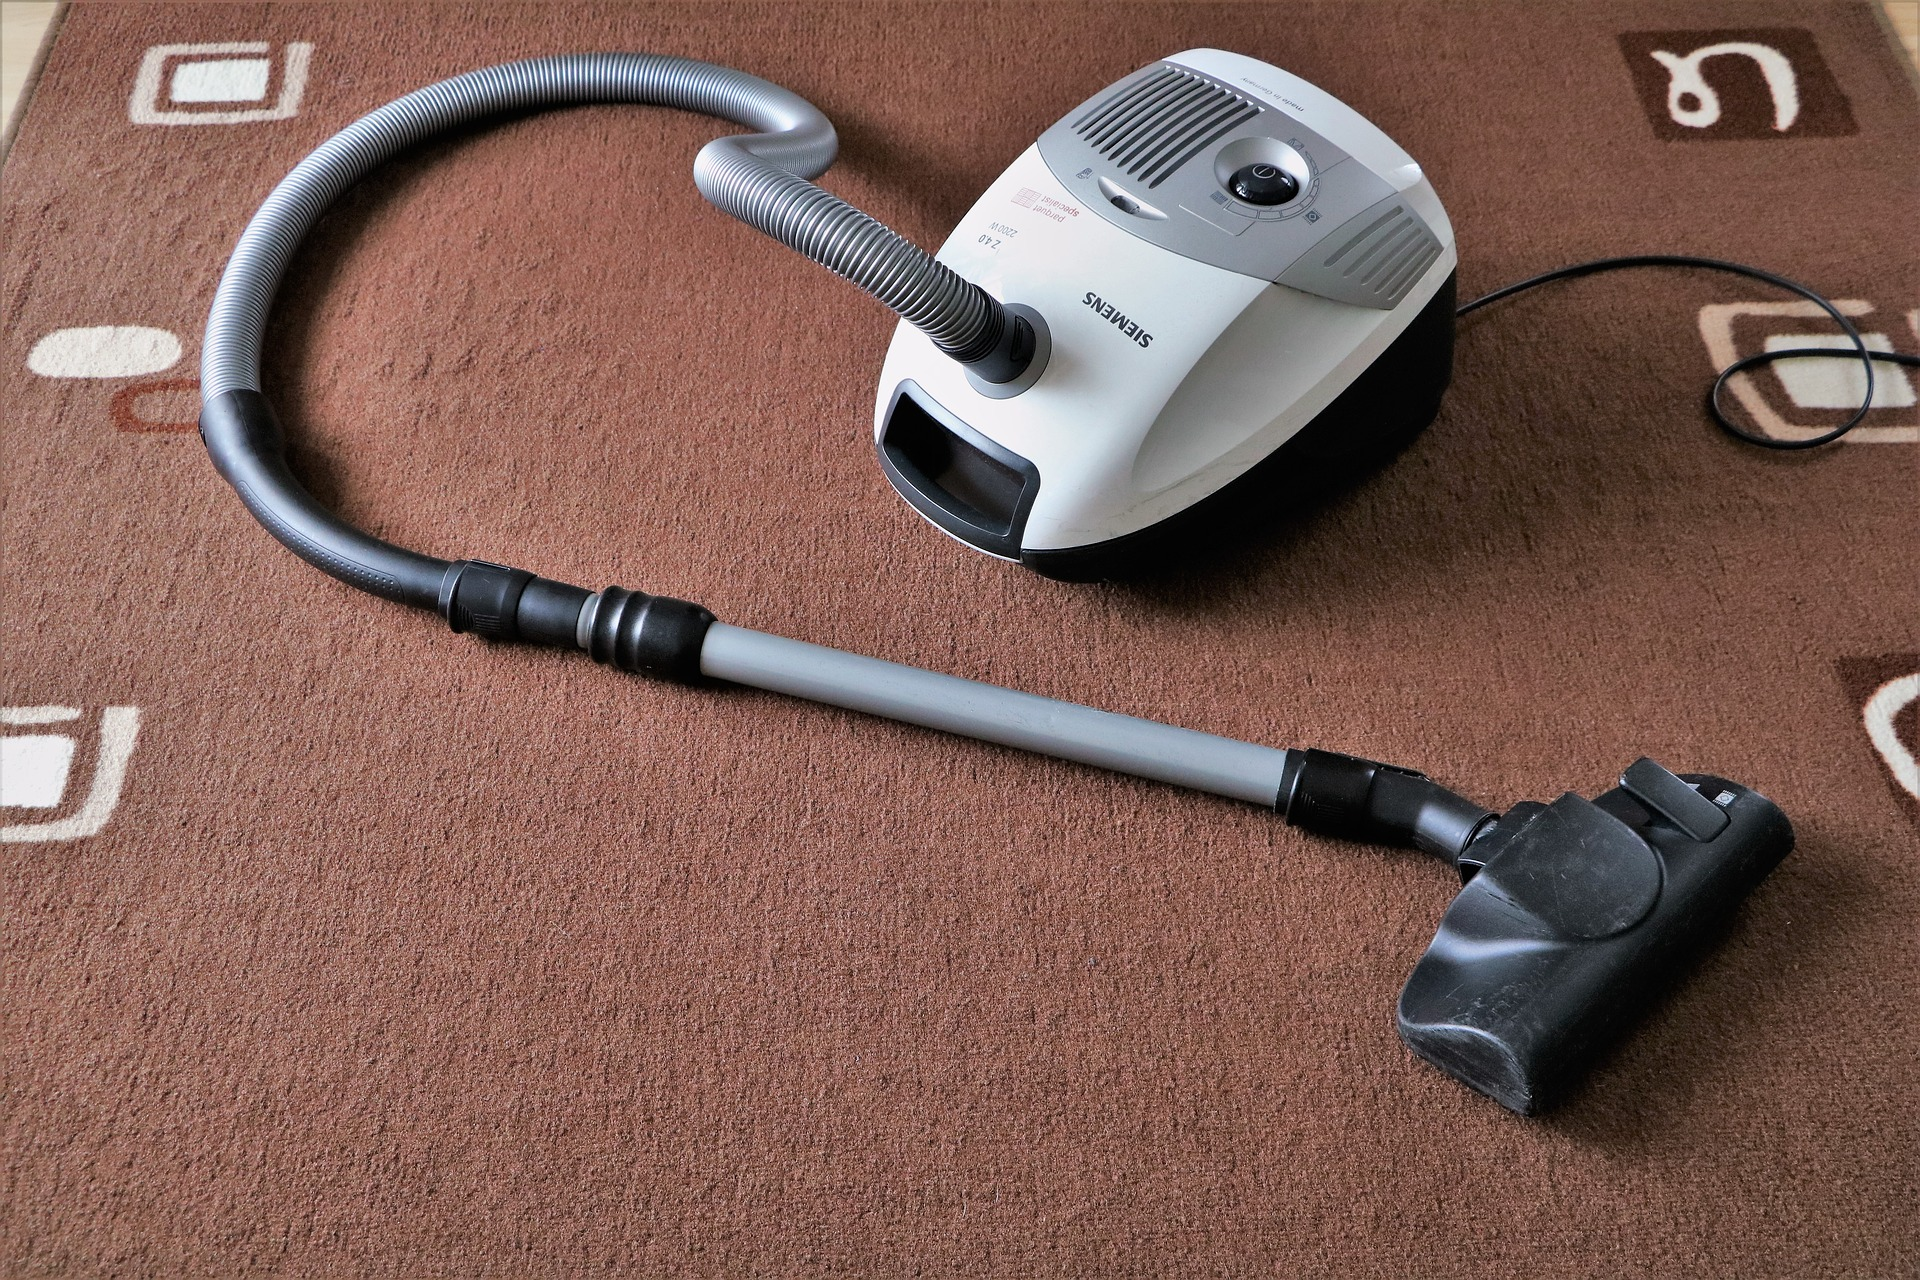 Handheld vacuum in the carpet